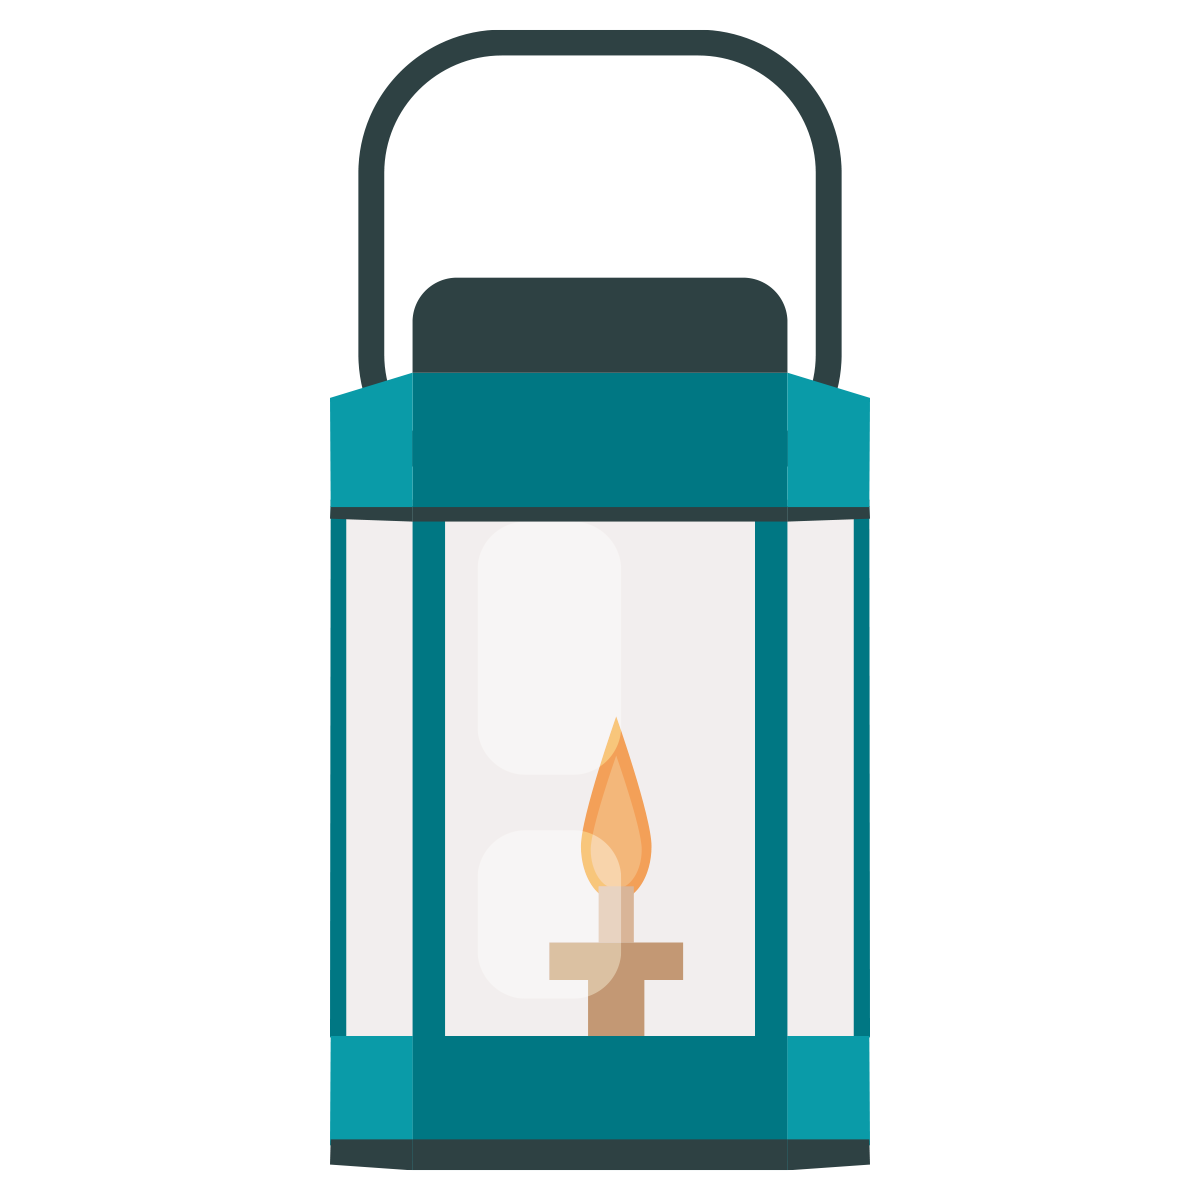 Lantern Pictogram